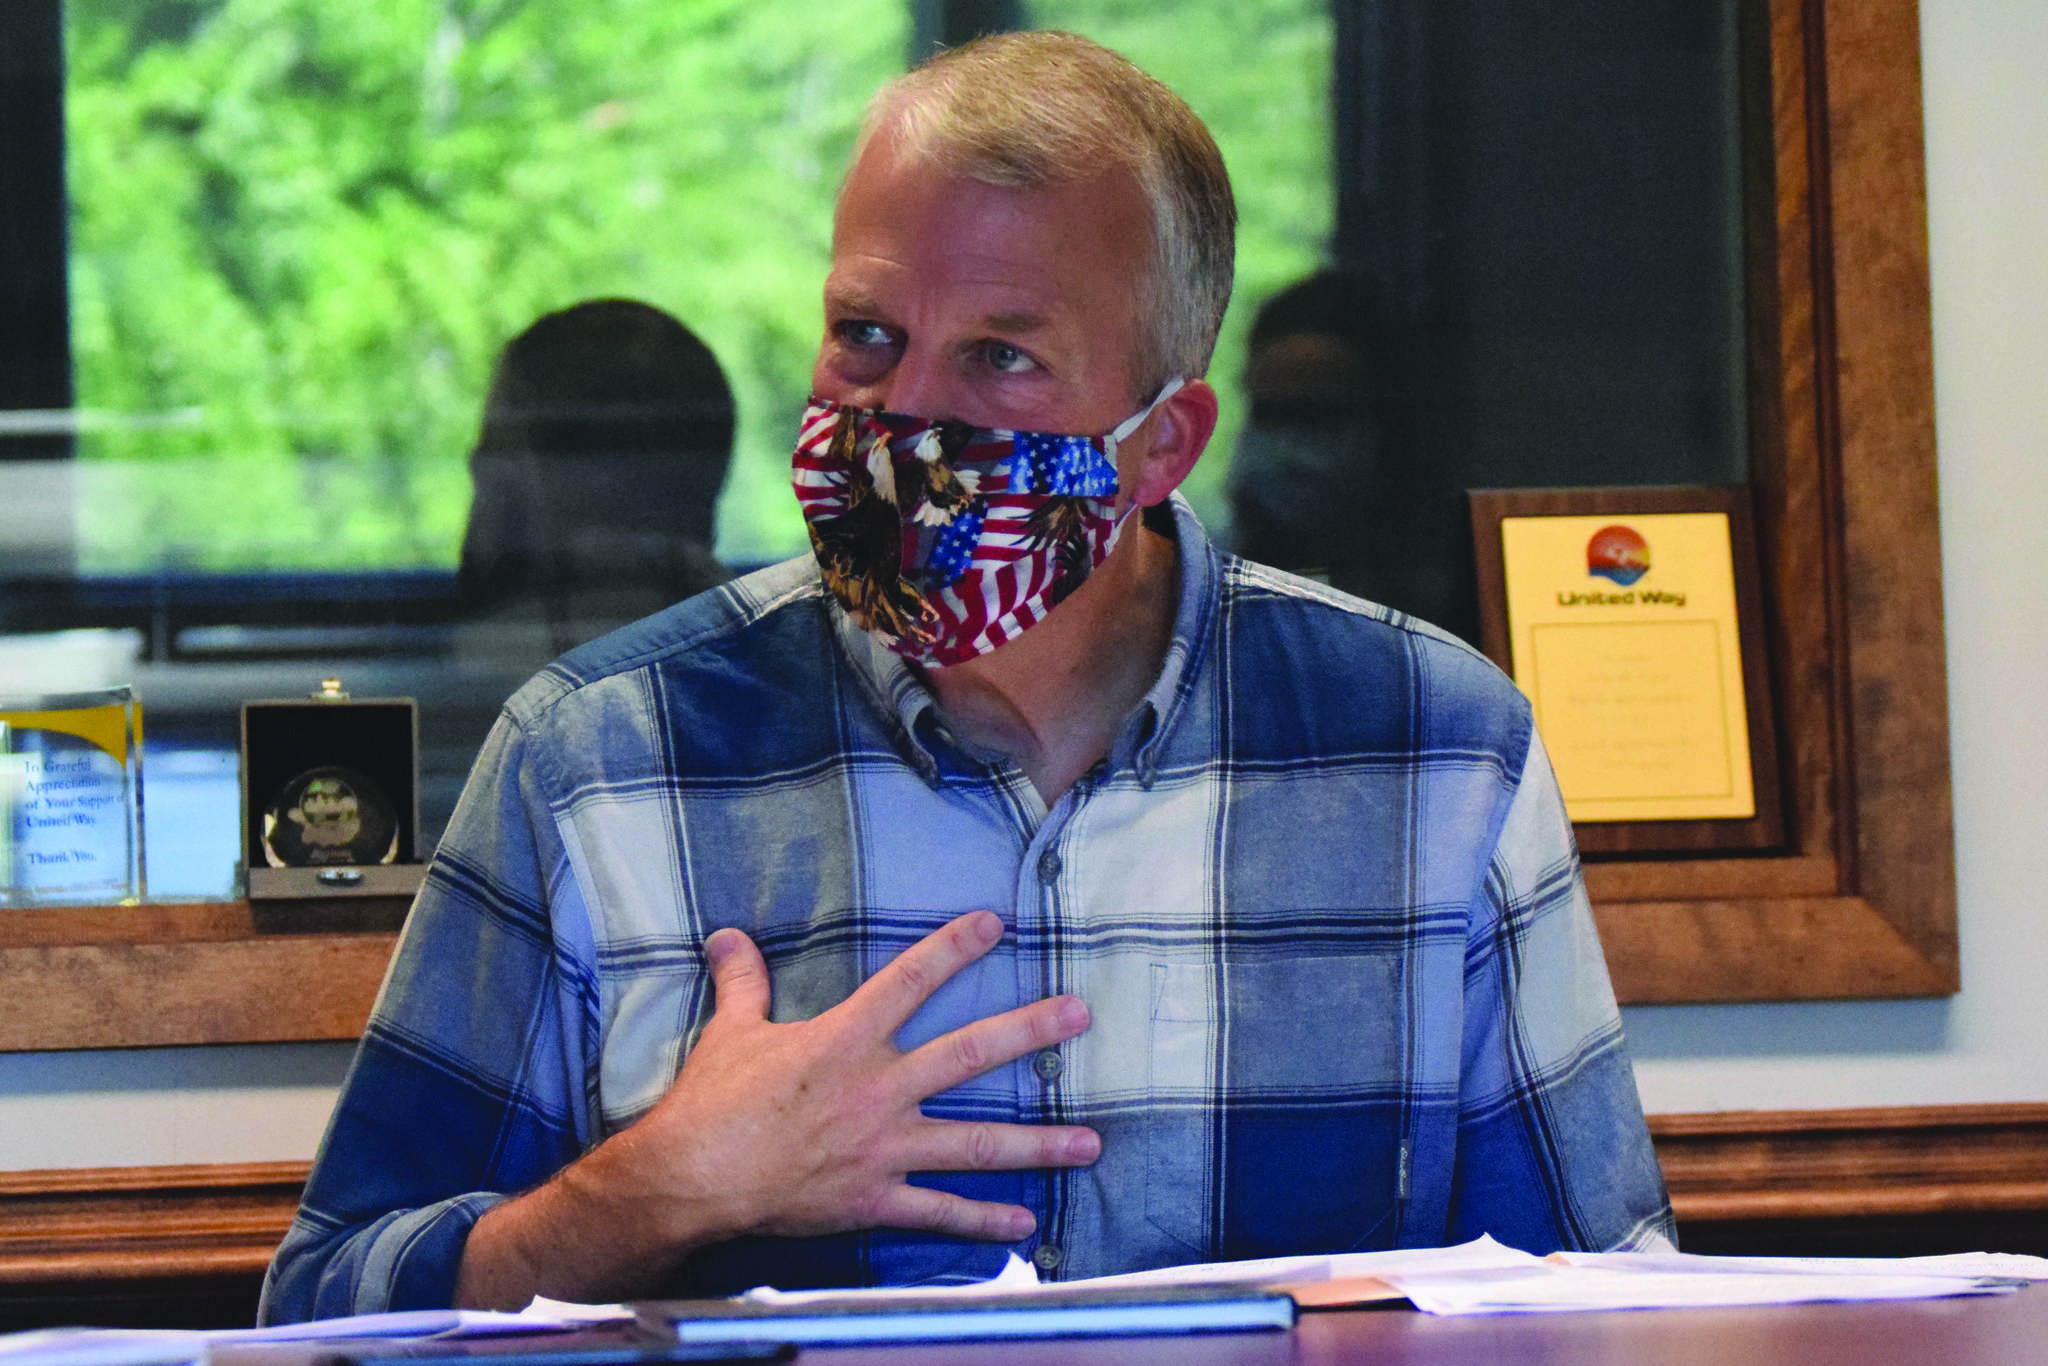 Republican Sen. Dan Sullivan of Alaska sits for an interview Thursday, Aug. 20, 2020, at the Peninsula Clarion in Kenai, Alaska. (Photo by Jeff Helminiak/Peninsula Clarion)